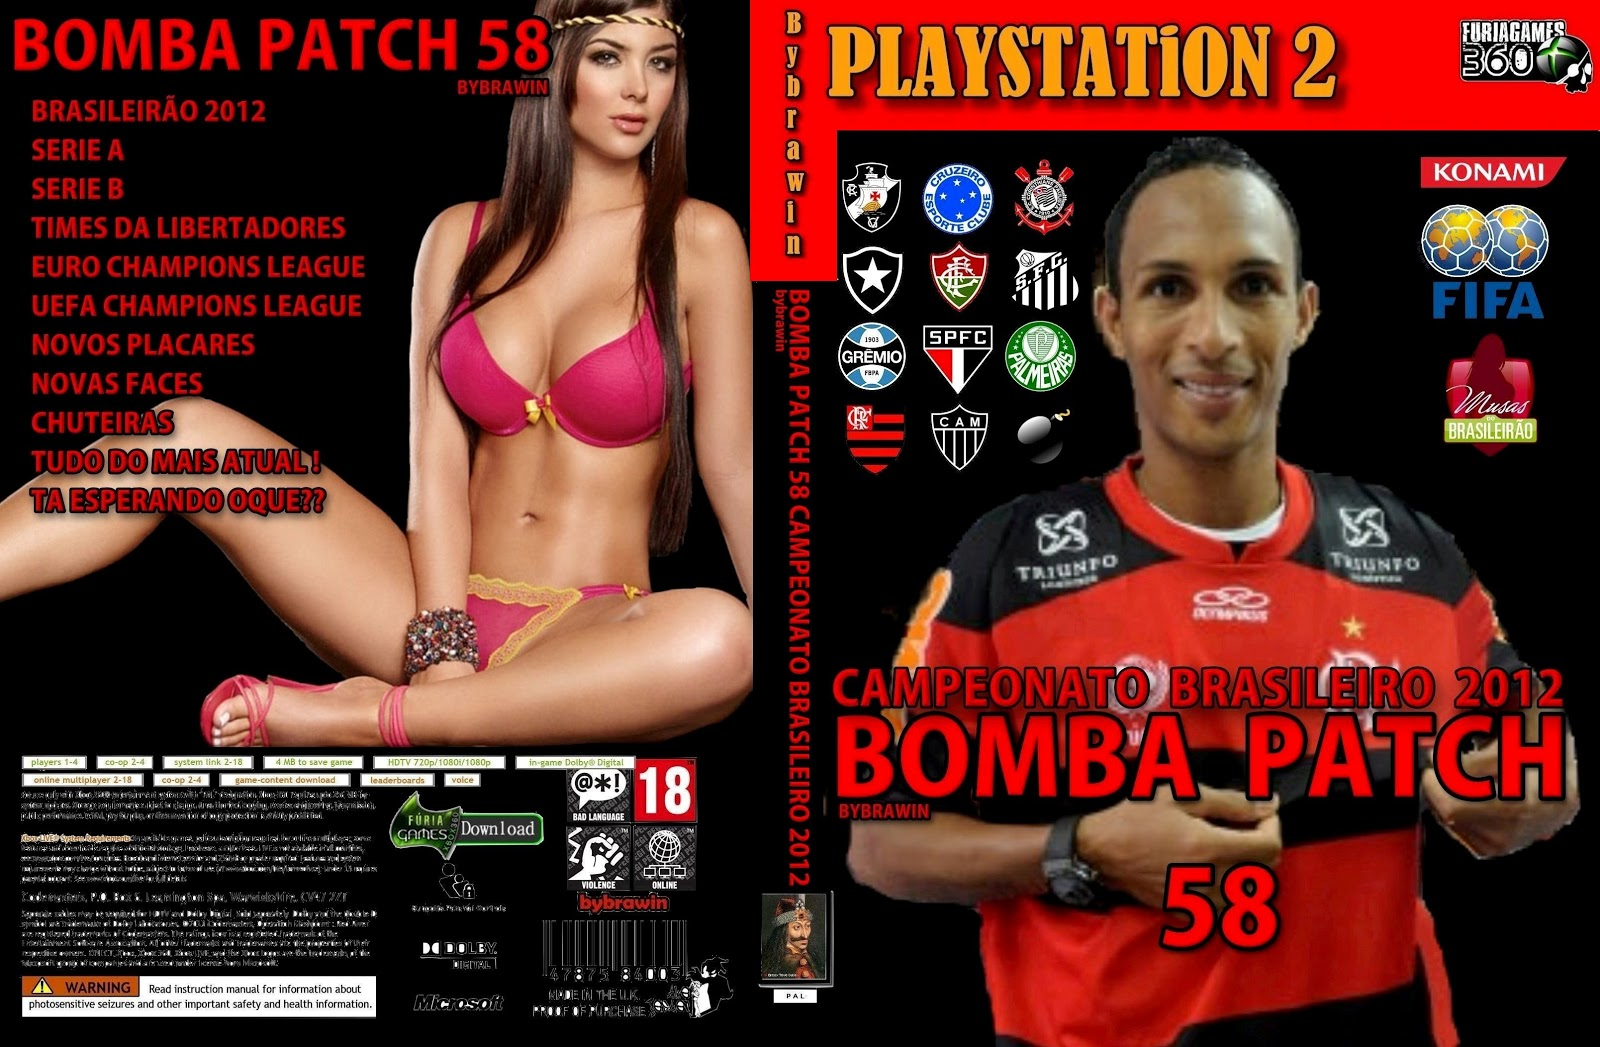 Winning Eleven 10 - Bomba Patch 58 - PS2